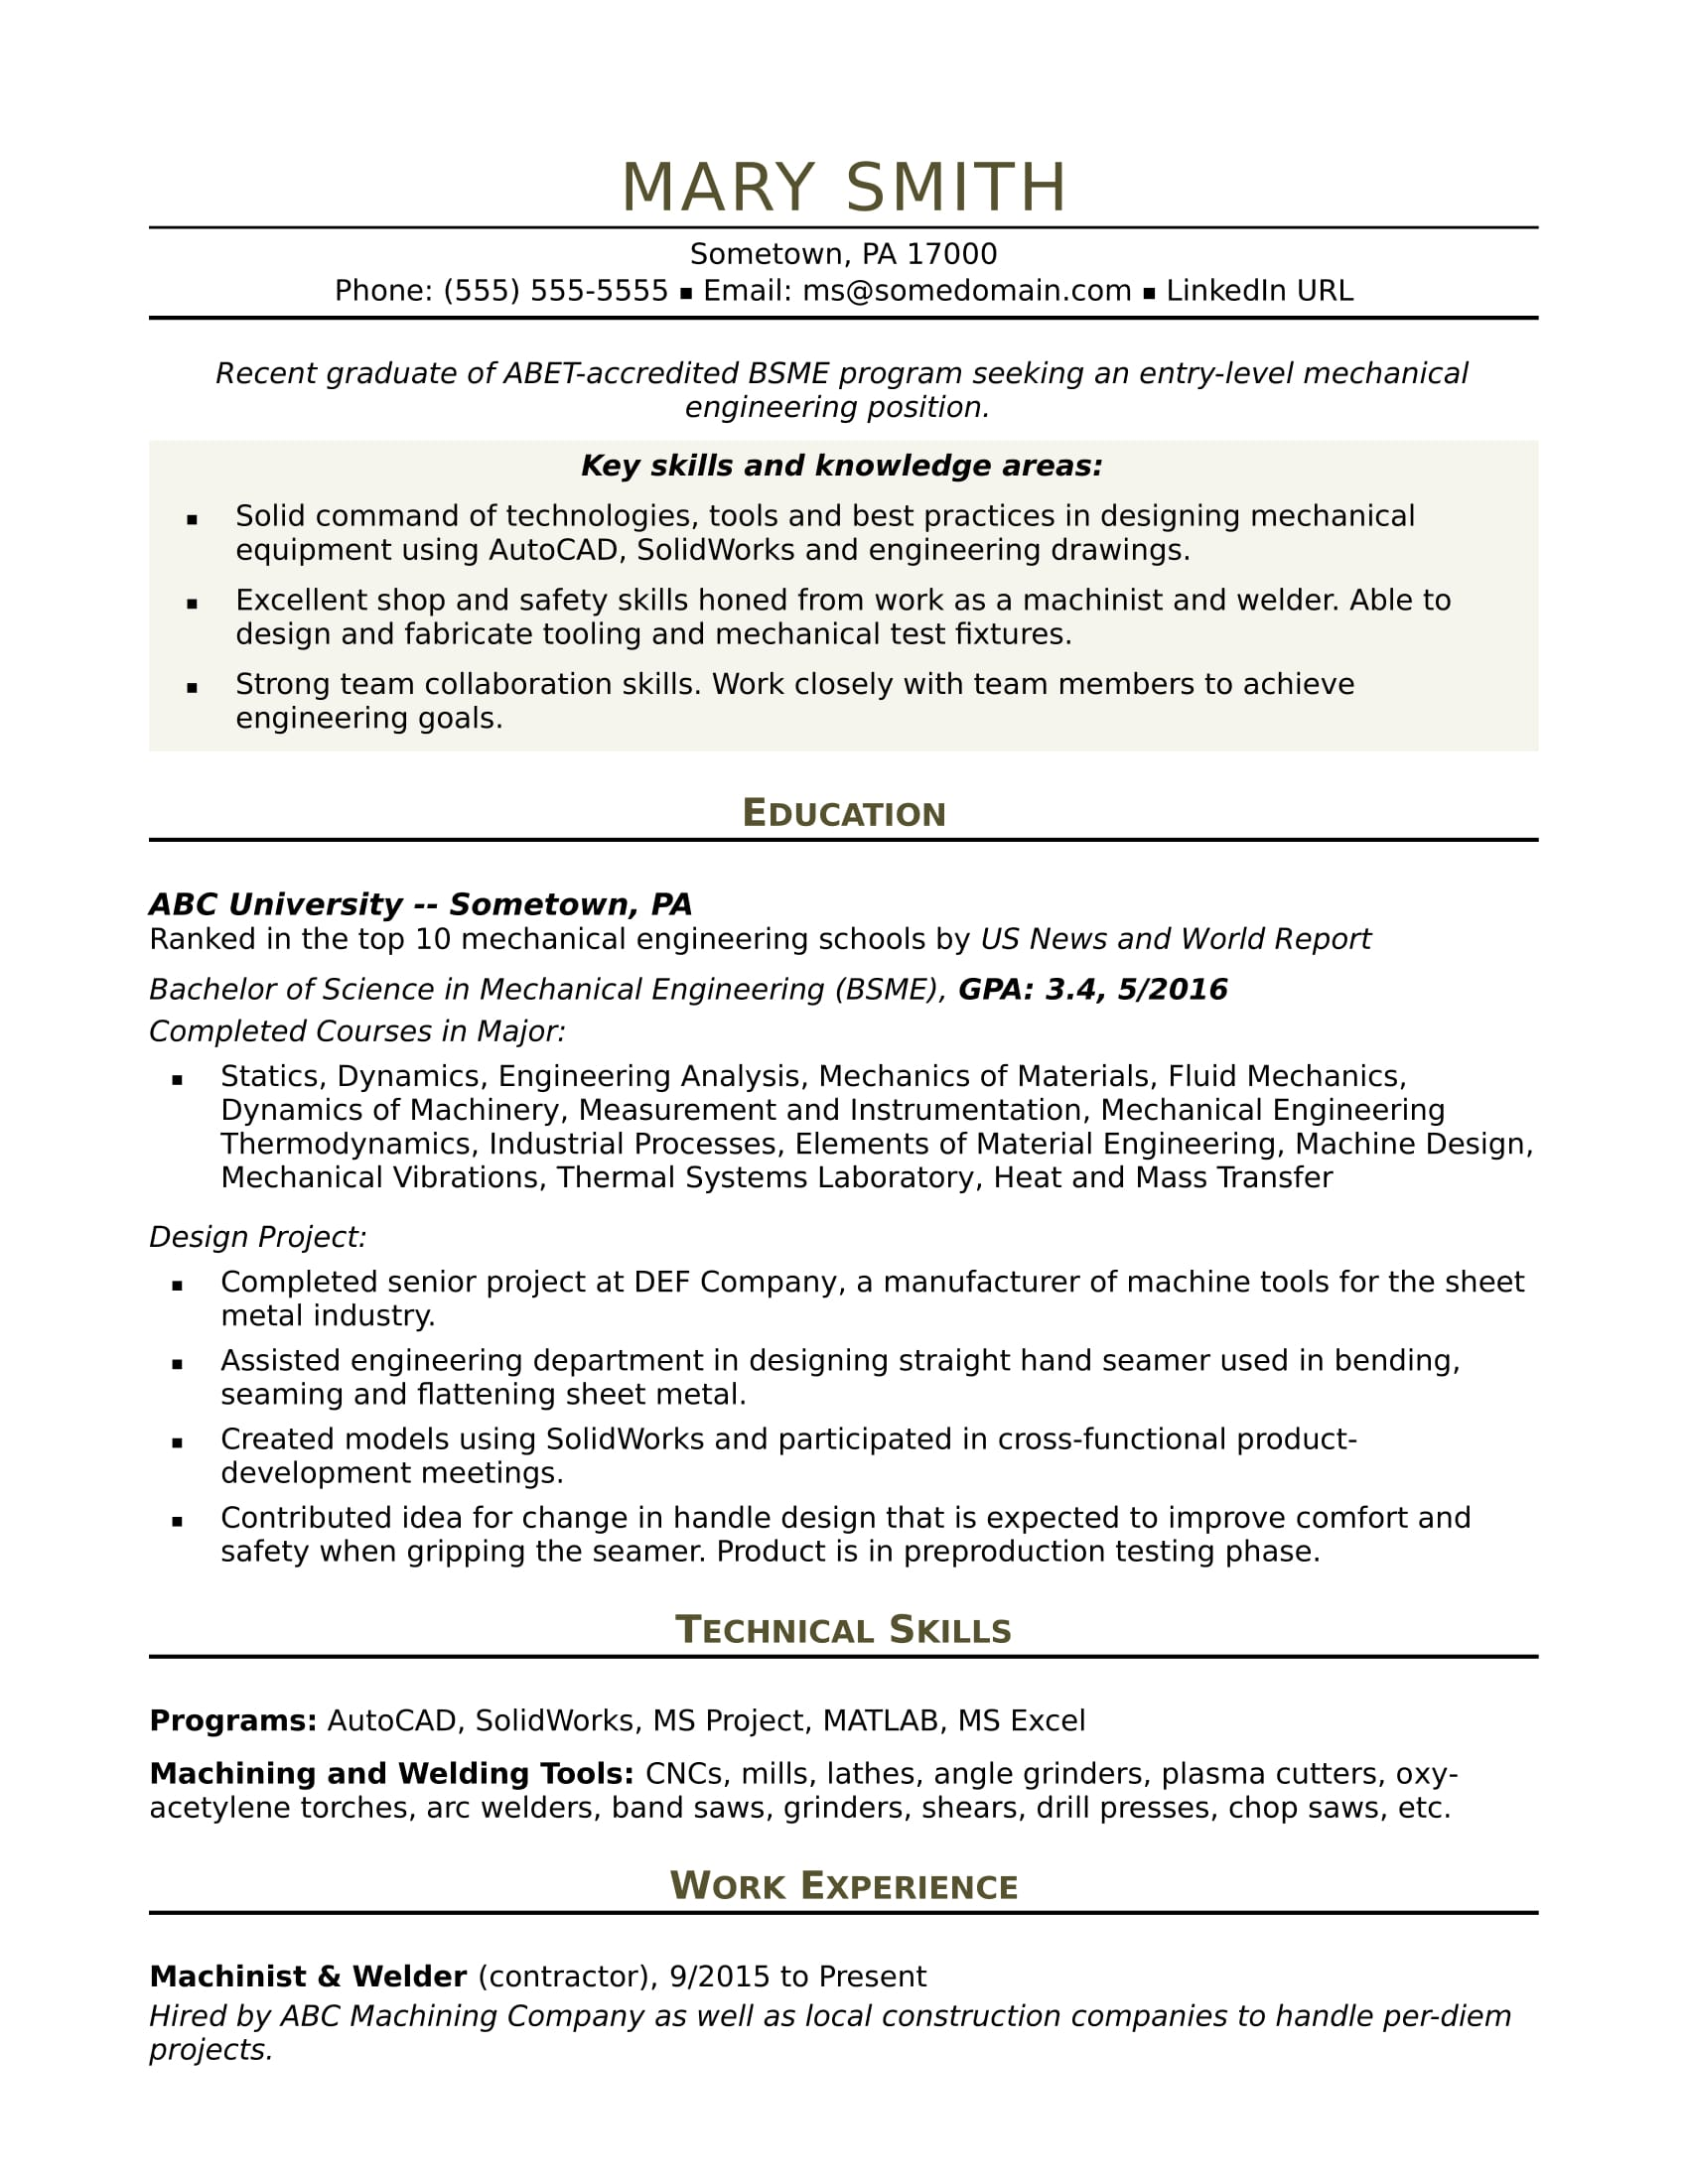 sample resume for an entry level mechanical engineer - Elements Of A Resume